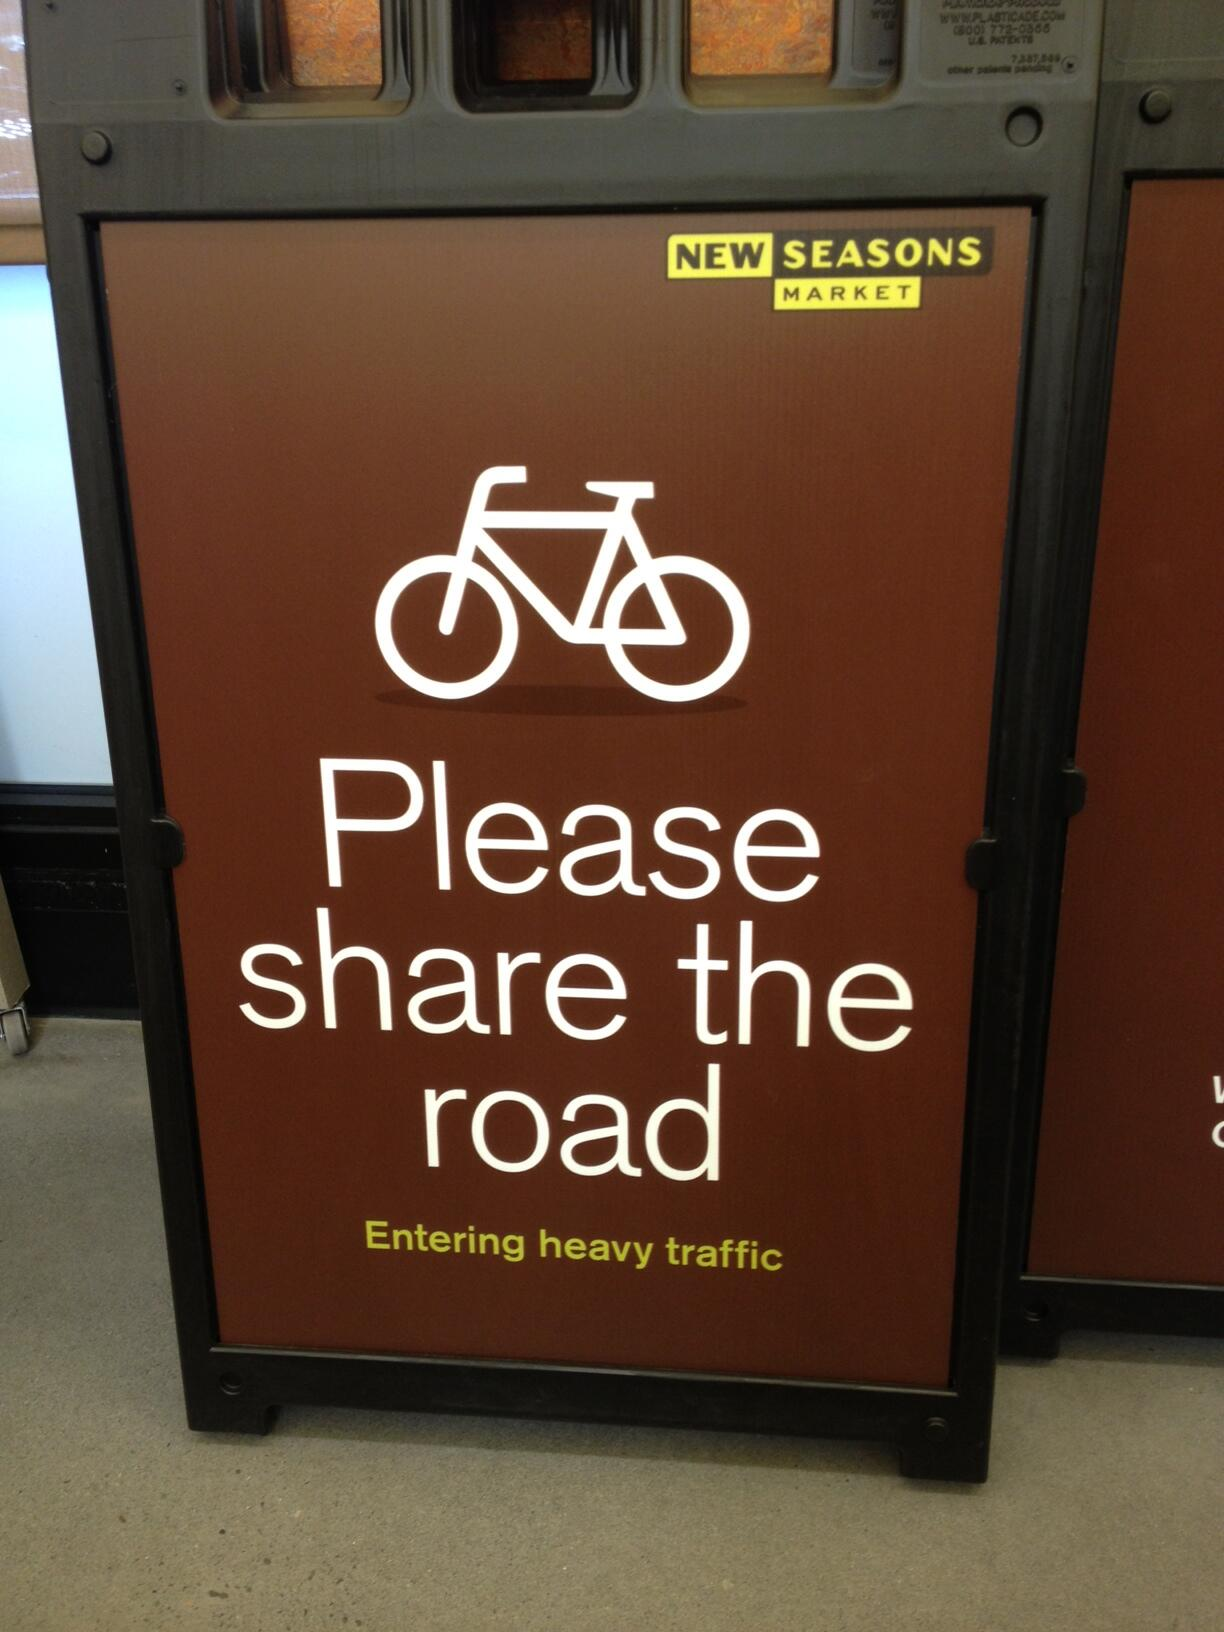 To help mitigate traffic craziness on Williams, @newseasons will have these A-frame signs up along the sidewalk http://t.co/IQUNBMJQaC